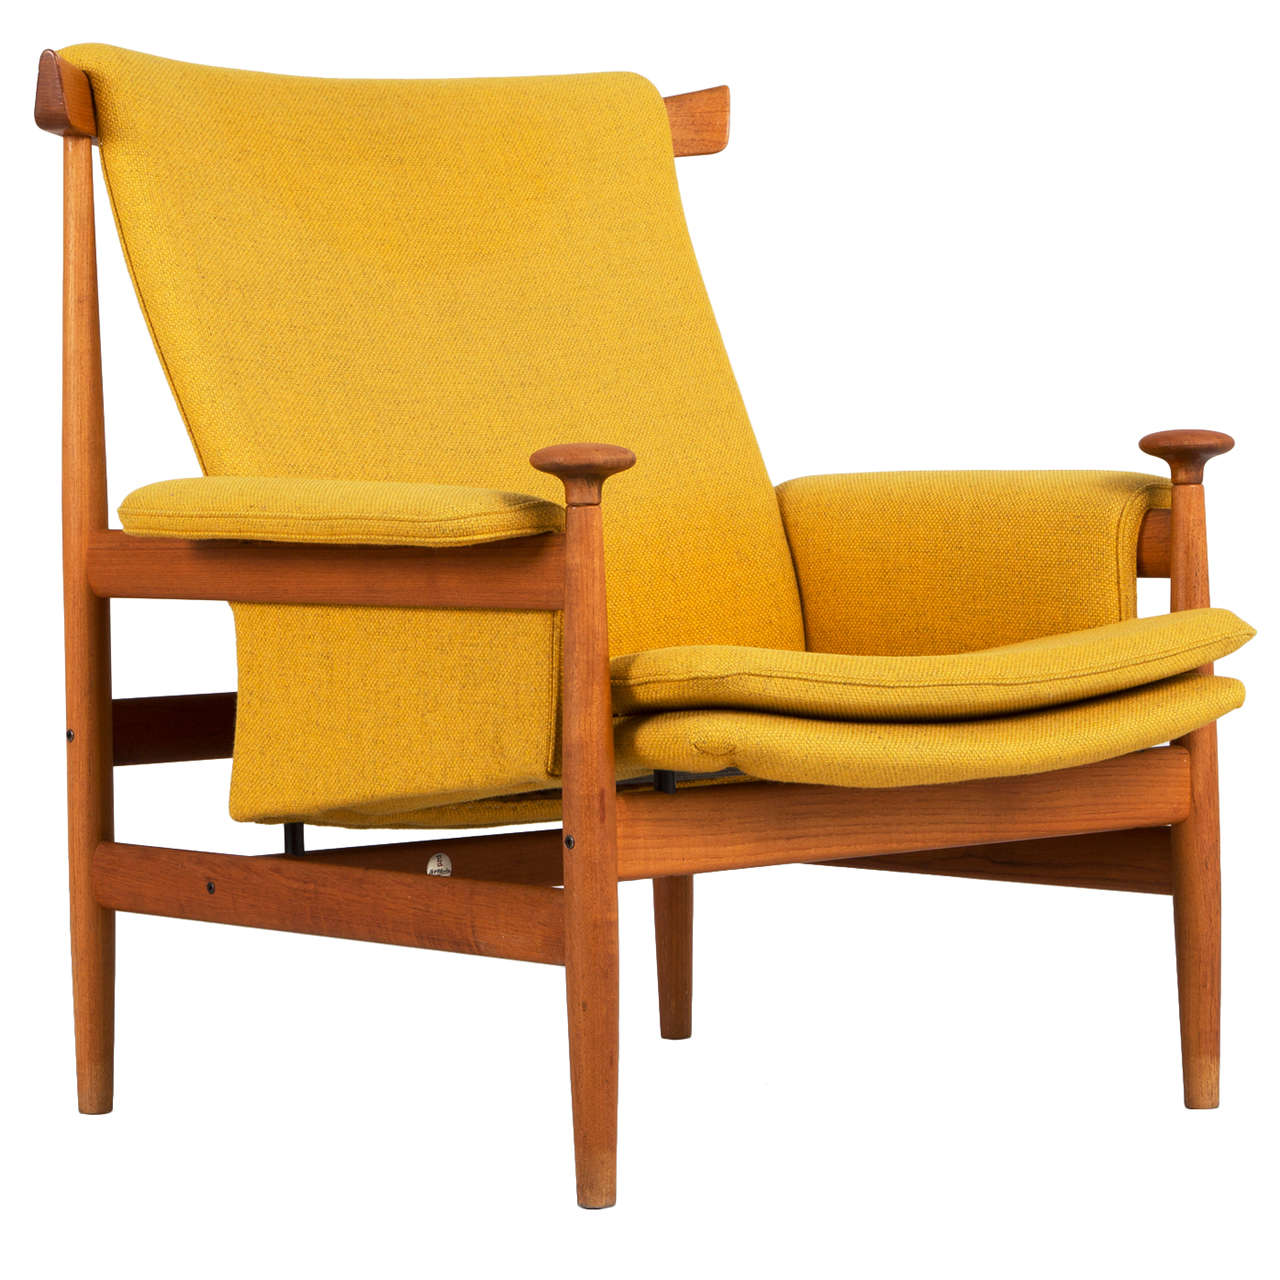 Bwana Chair By Finn Juhl For France And Sons, Denmark 1